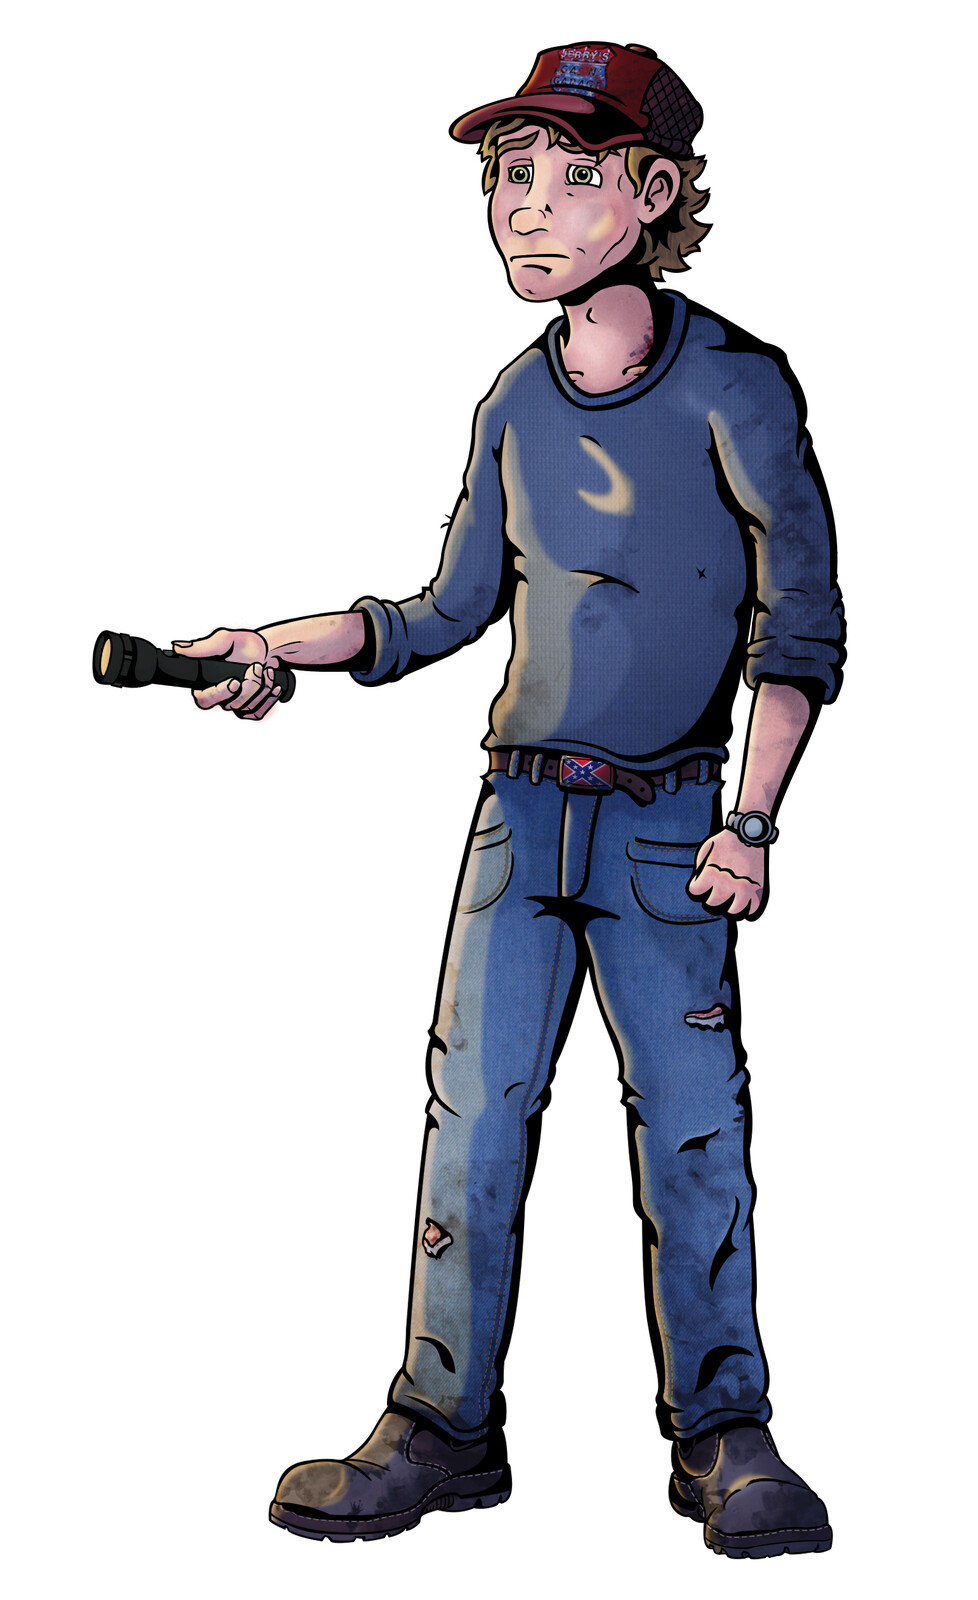 Tracey Hudson. One of the two main characters. The deadbeat brother of Cassie. A High school dropout with a knack for cars, hence his work as a mechanic at Jerry's Gas'N'Garage, Likes to drink his paycheck away with his friends at the local waterhole.